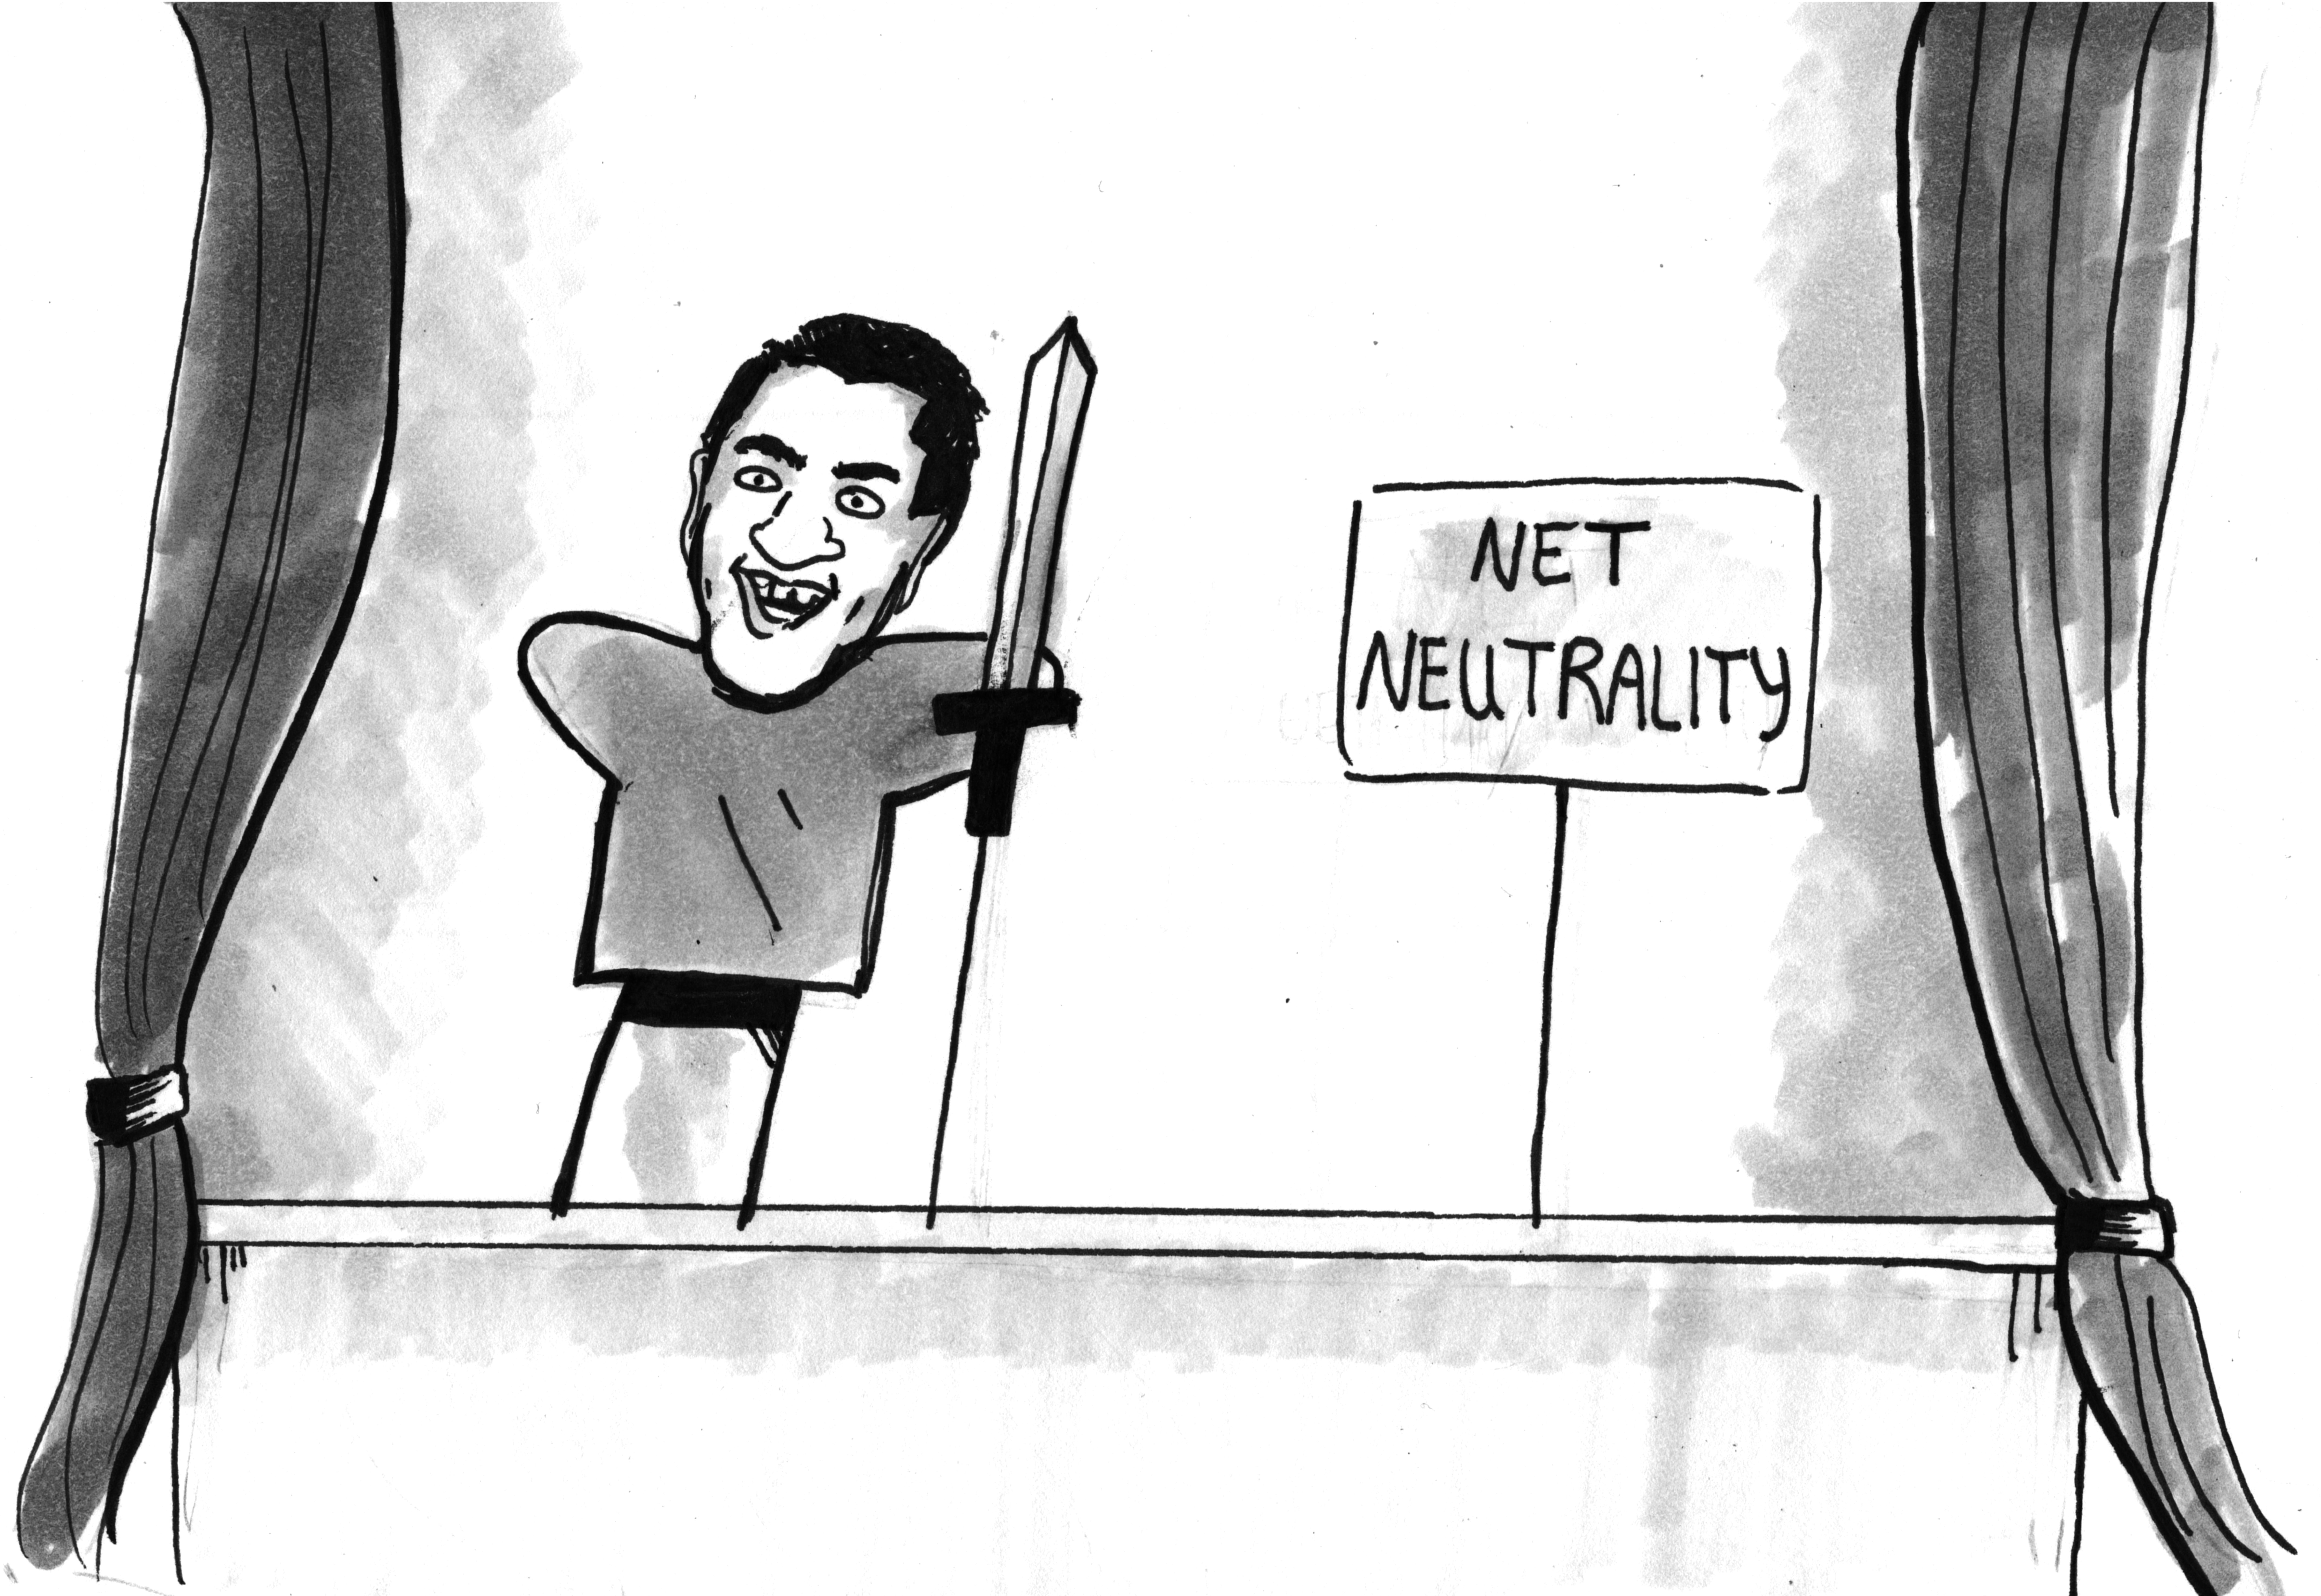 Digital Disaster: Net Neutrality and its Impending Death